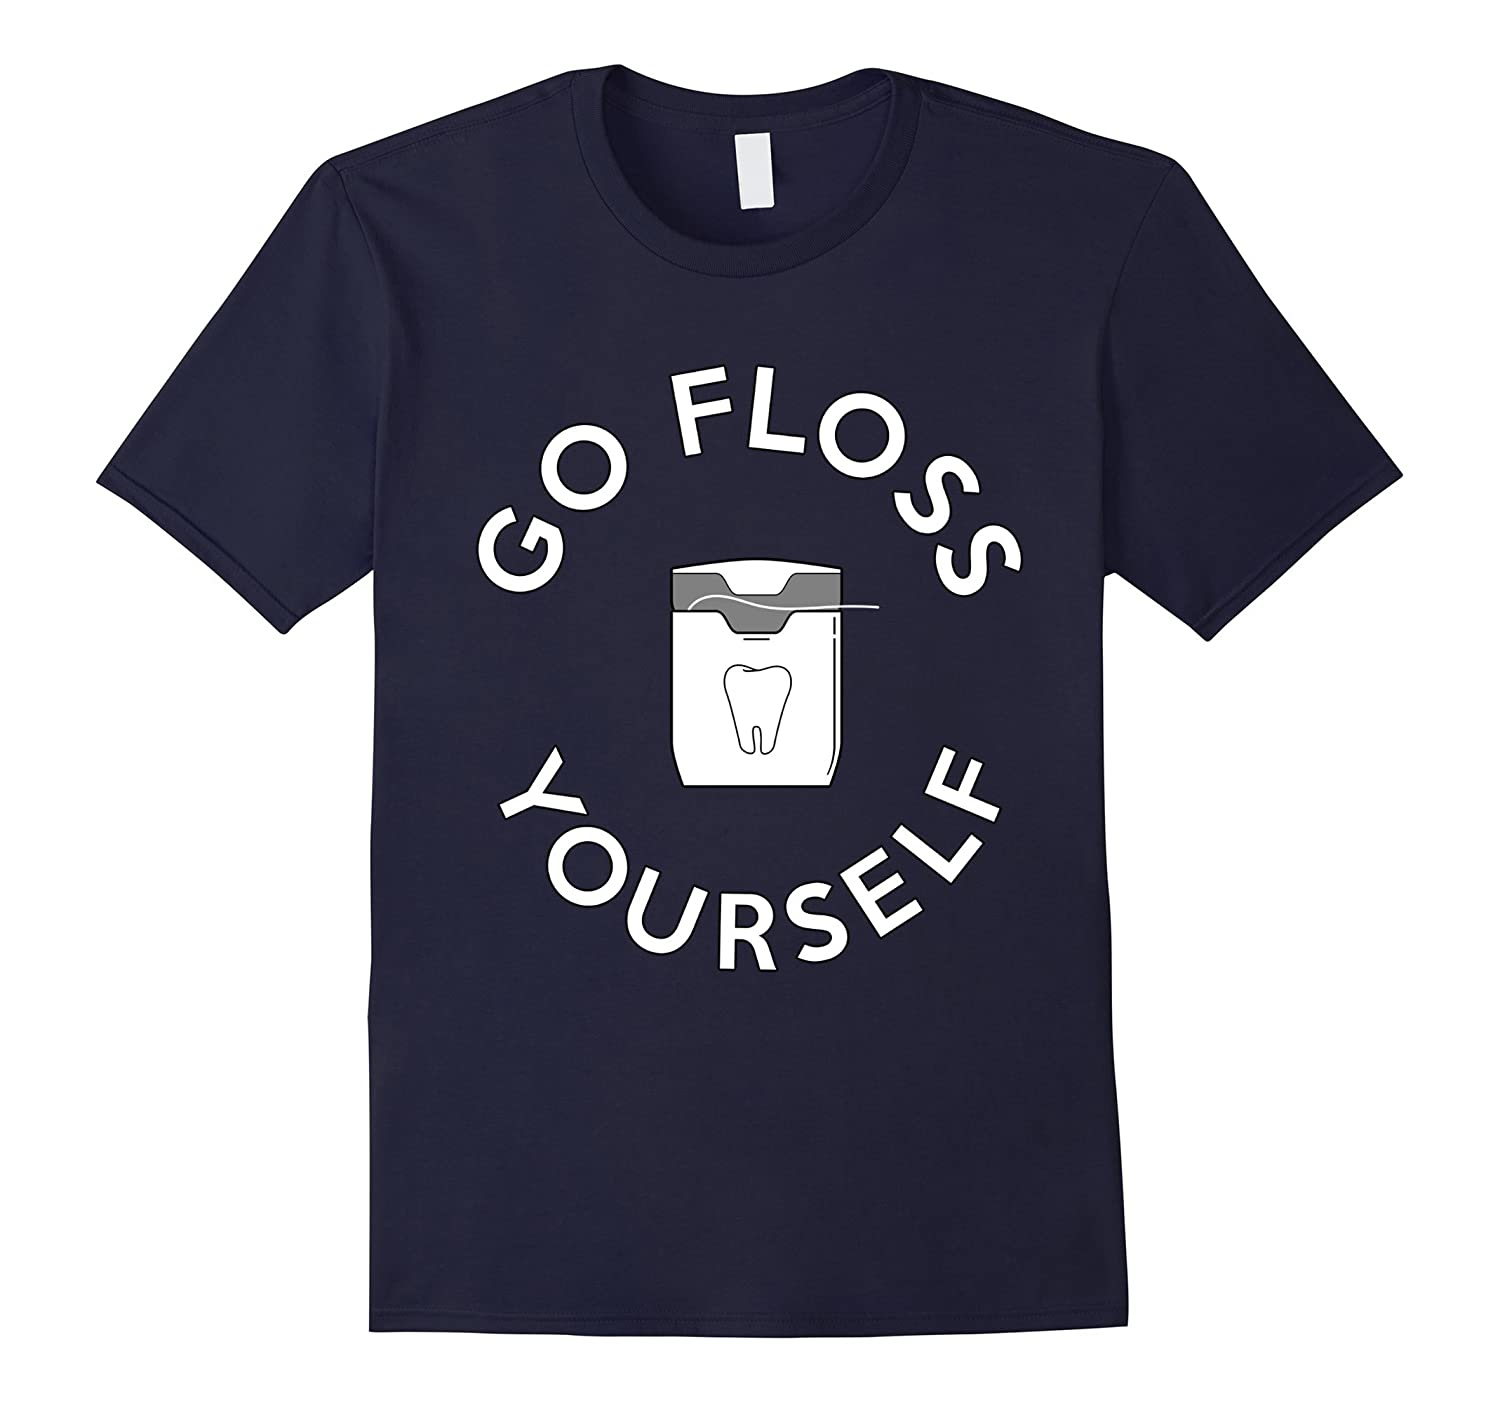 Go Floss Yourself Funny Tooth Shirt Gift Idea-TD